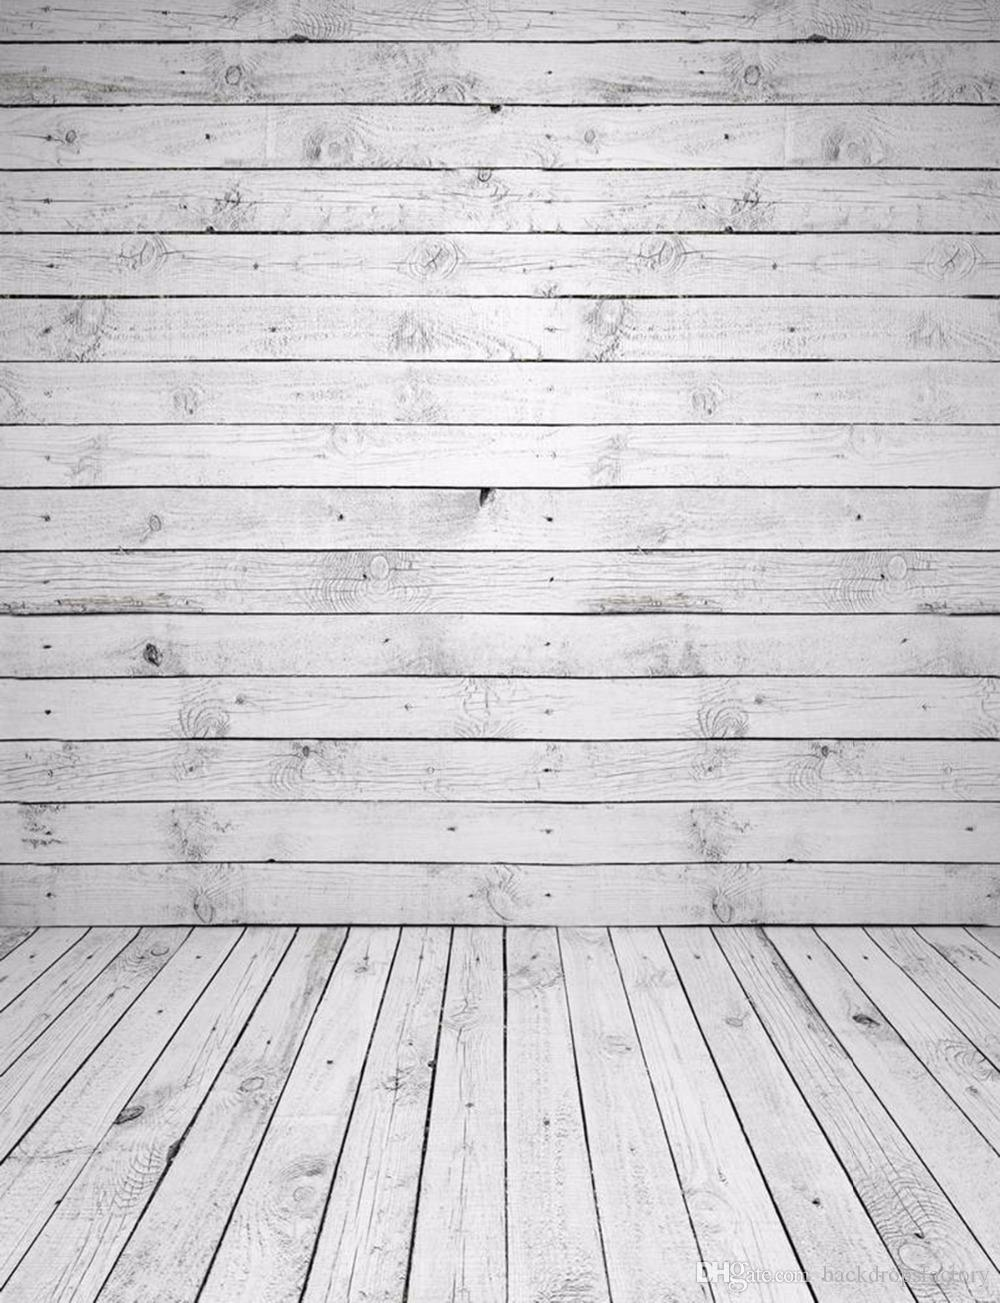 2018 Vinyl Photography Backdrop Wood Wall Floor Vintage White Wooden Planks  Kids Children Newborn Baby Photo Props Studio Booth Backgrounds From ...